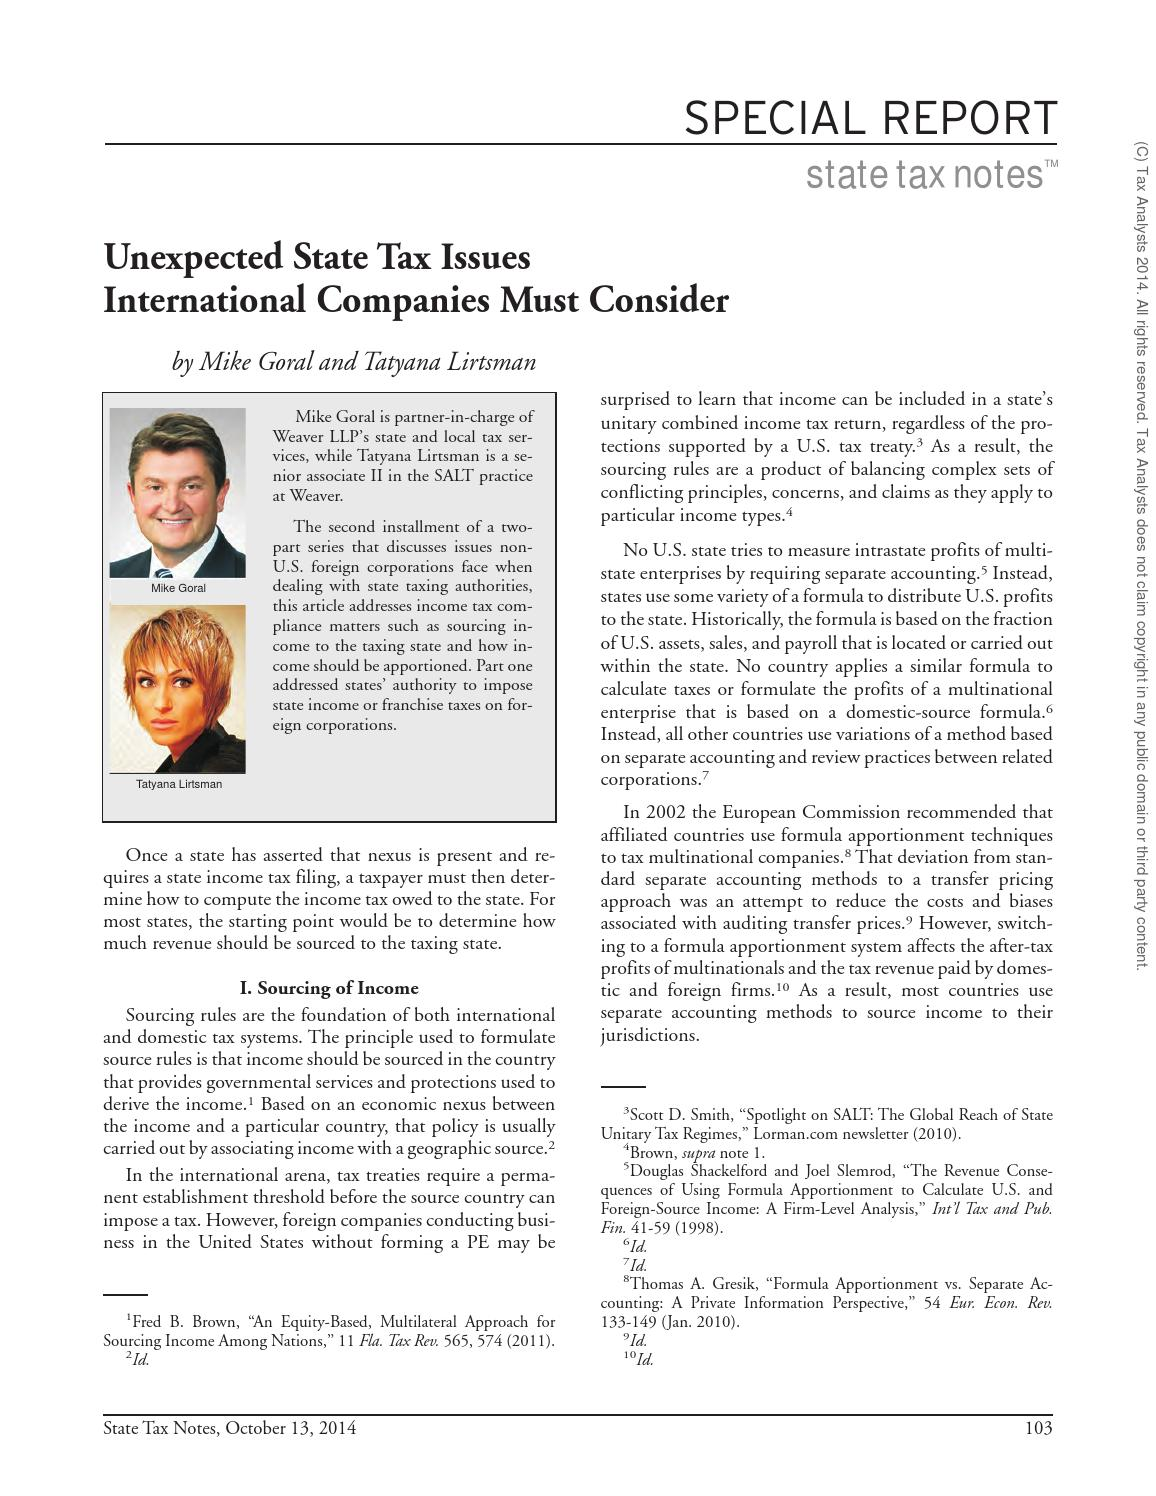 Unexpected state tax issues international companies must consider unexpected state tax issues international companies must consider by weaver issuu sciox Choice Image